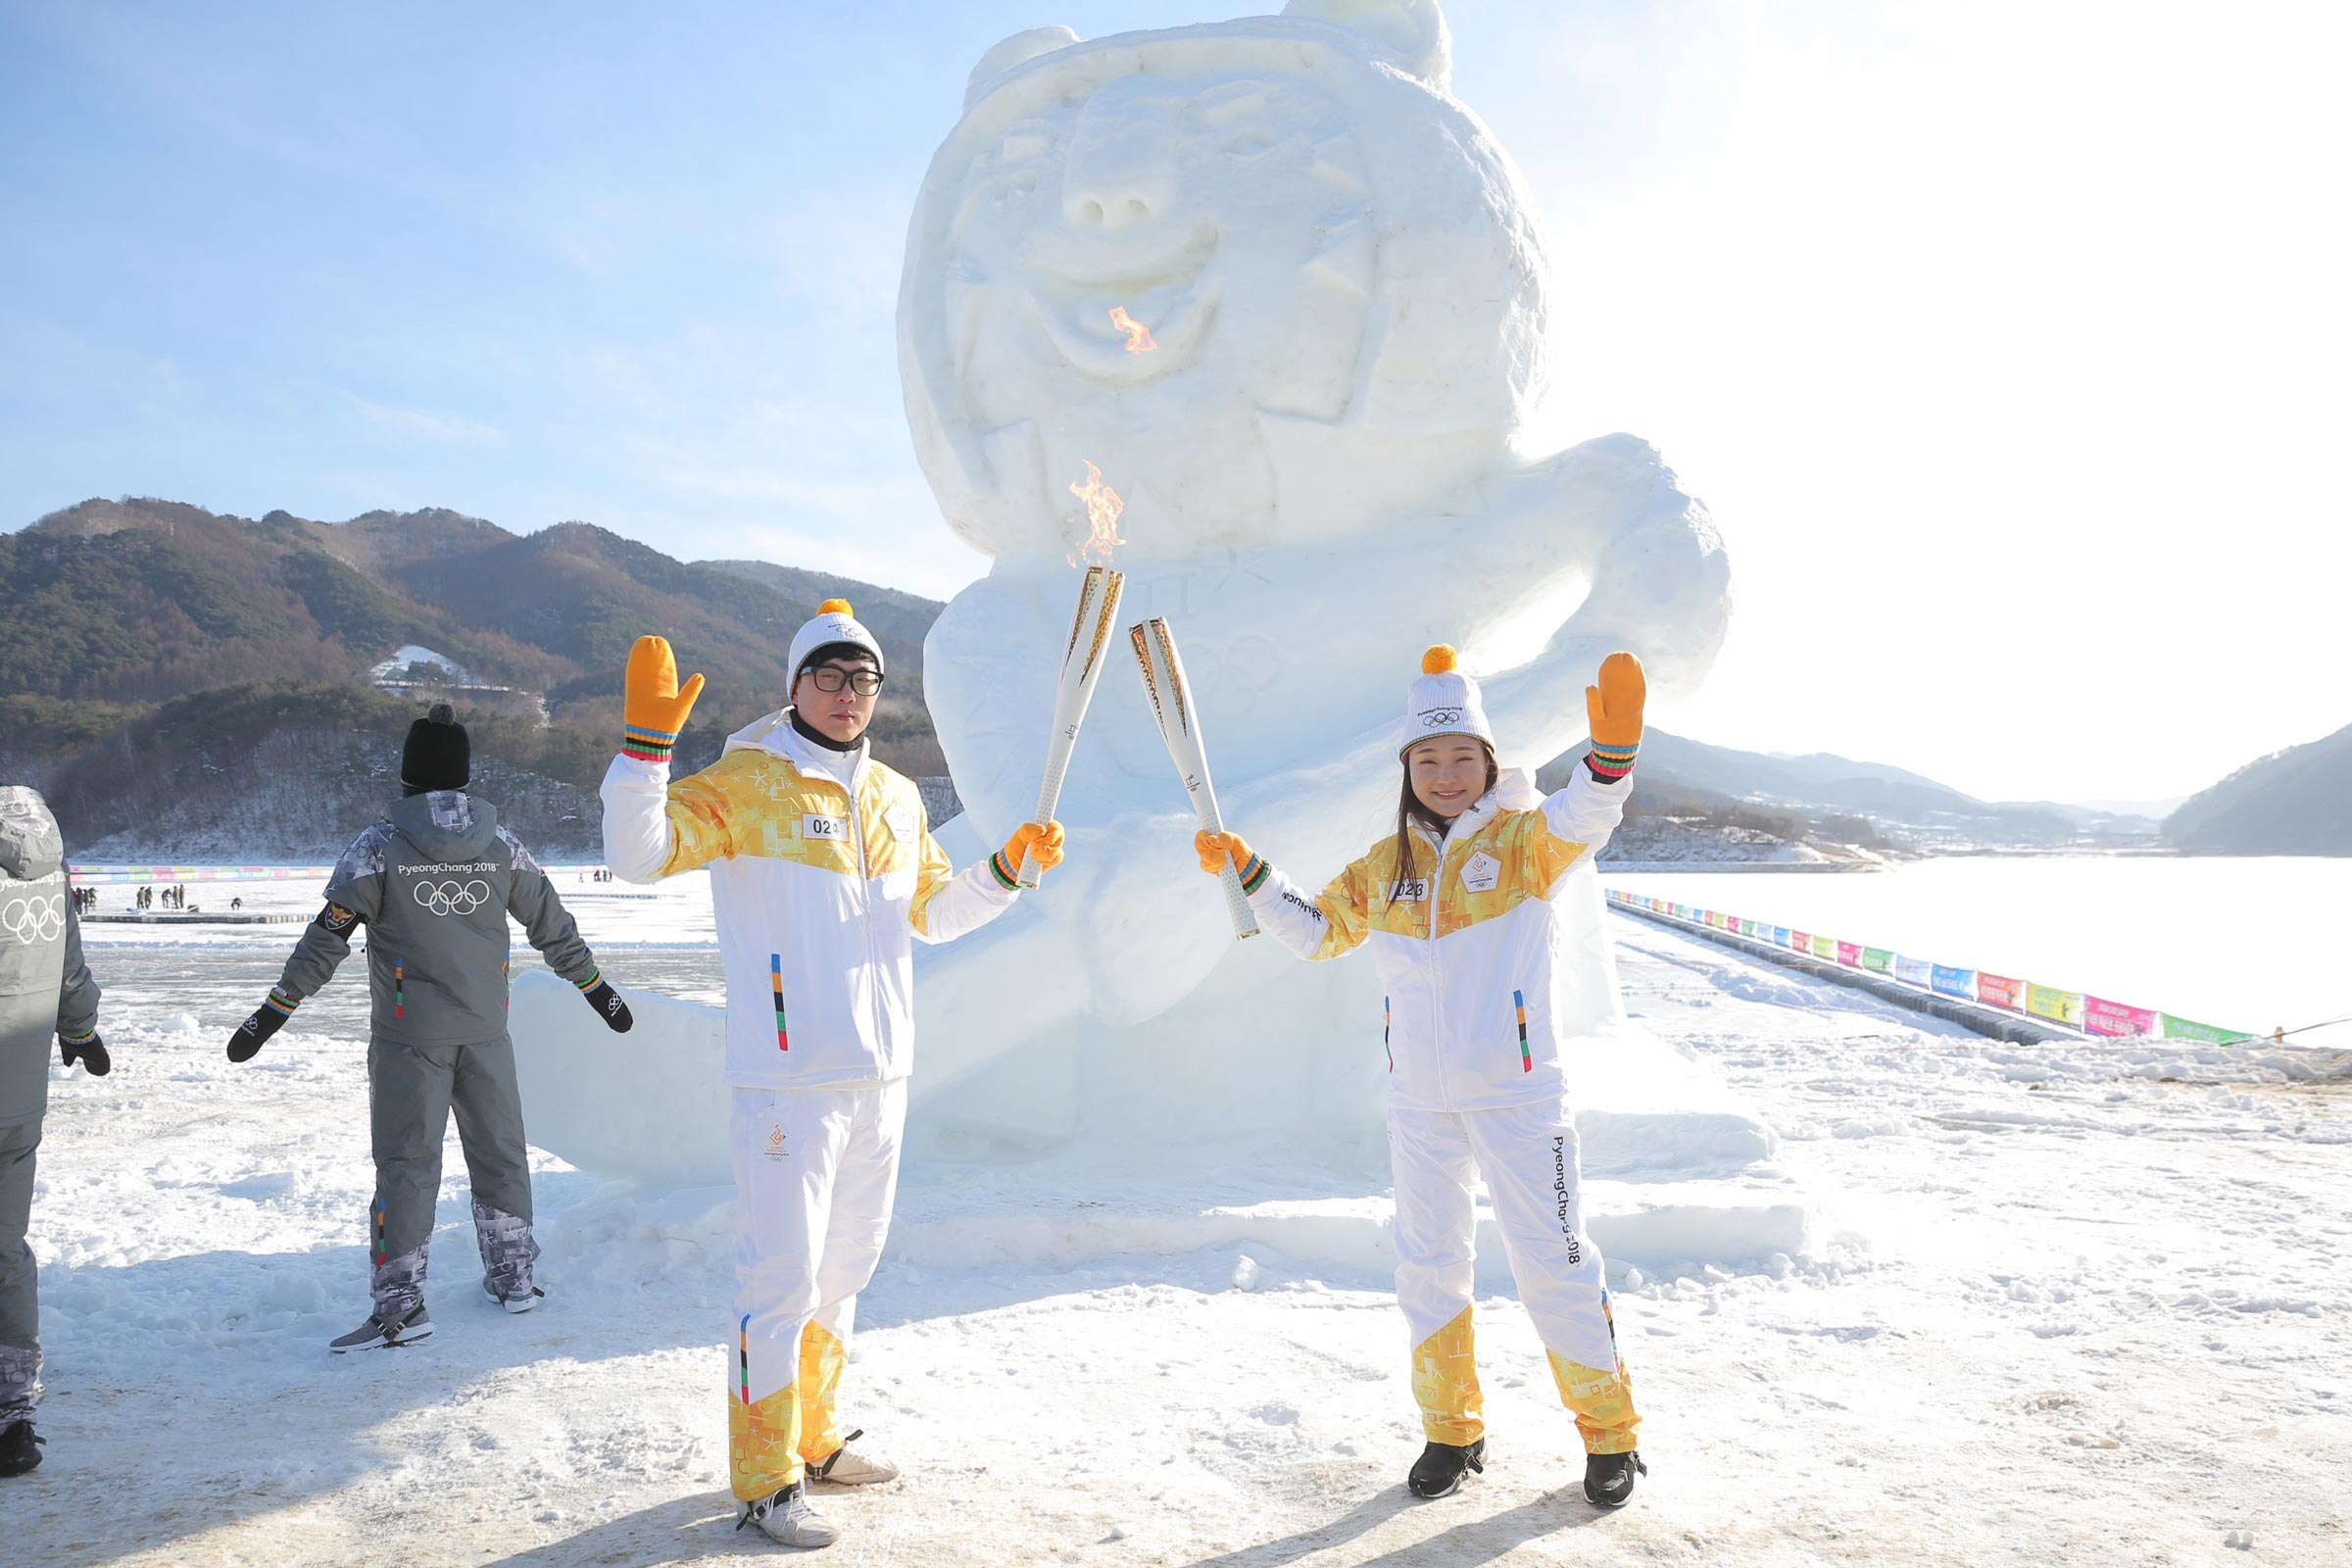 North And South Korea To Unite At 2018 Winter Olympics ...